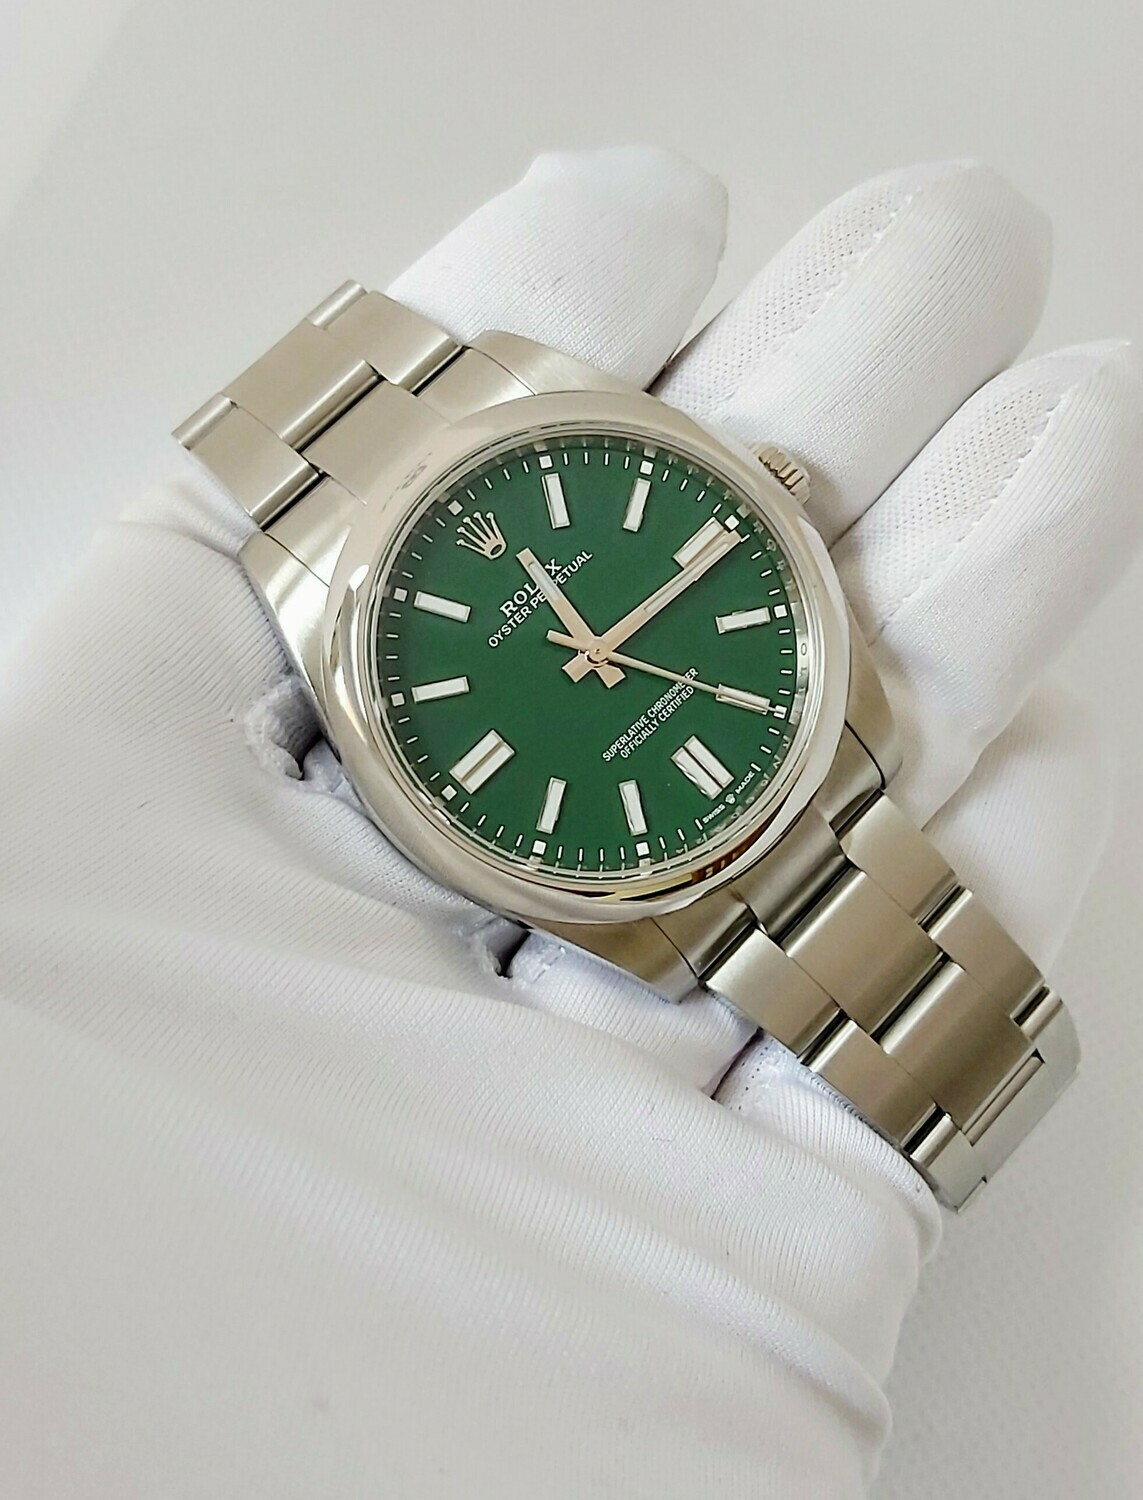 Rolex Oyster Perpetual 41 - 124300 - Green - Full Set